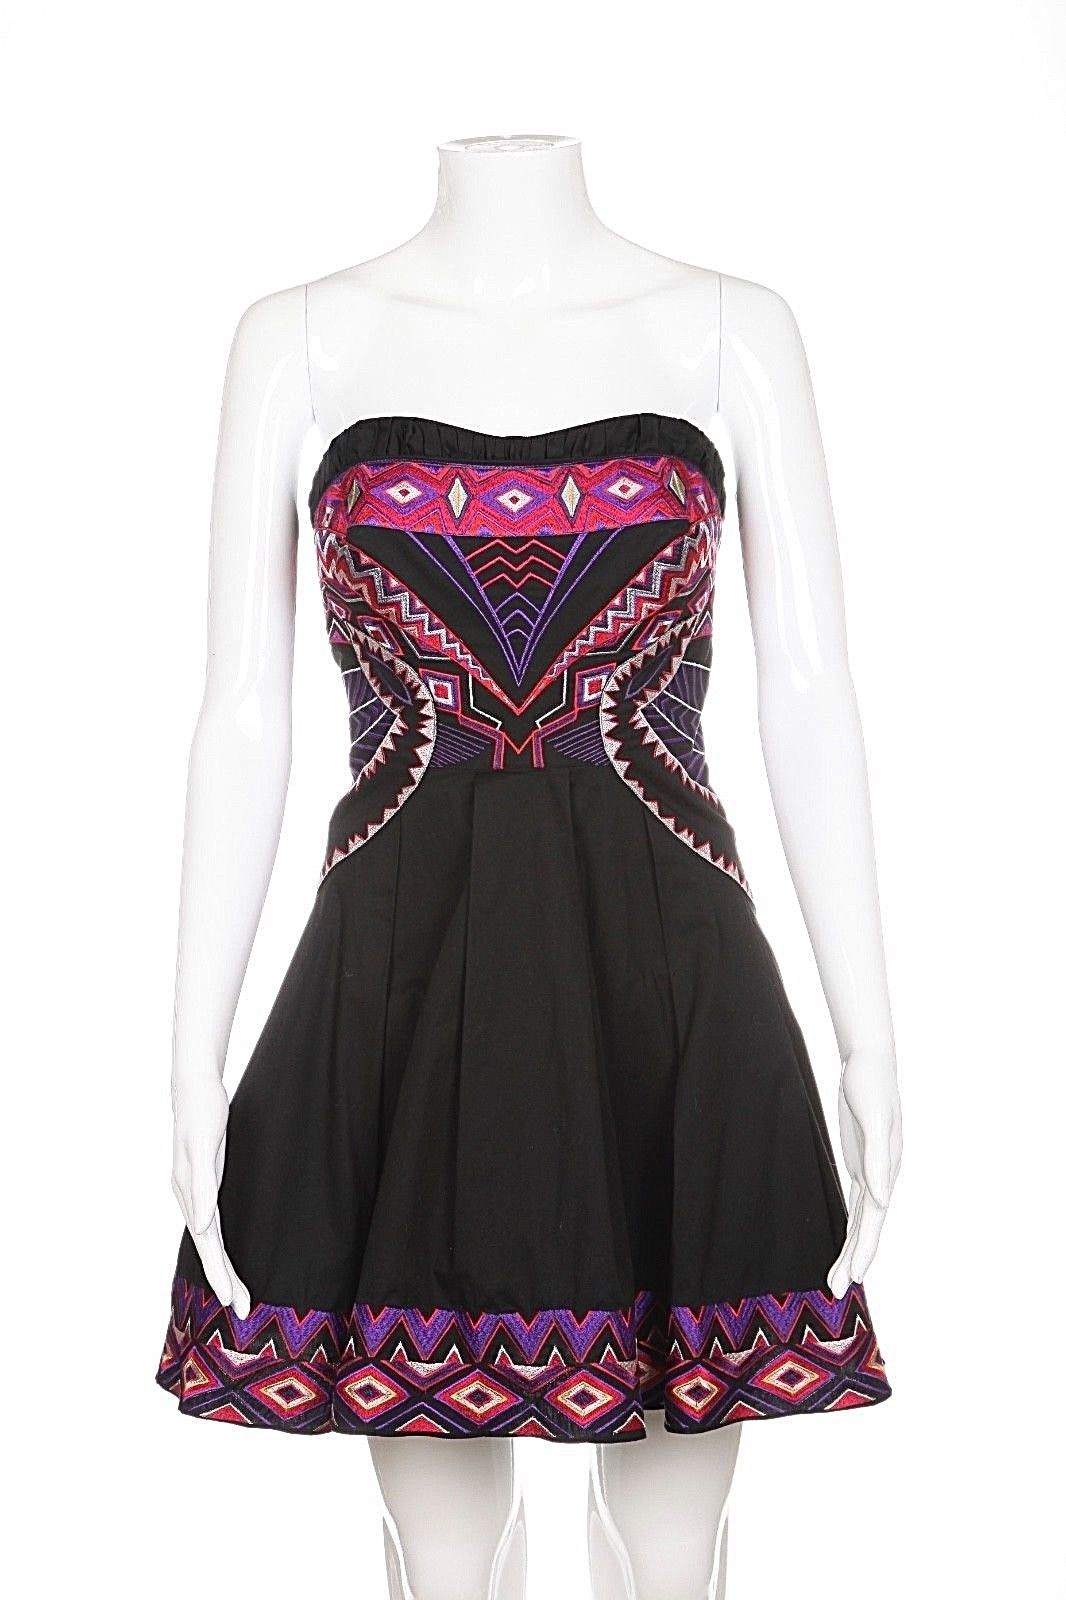 Karen Millen Strapless Flared Dress with Embroidery